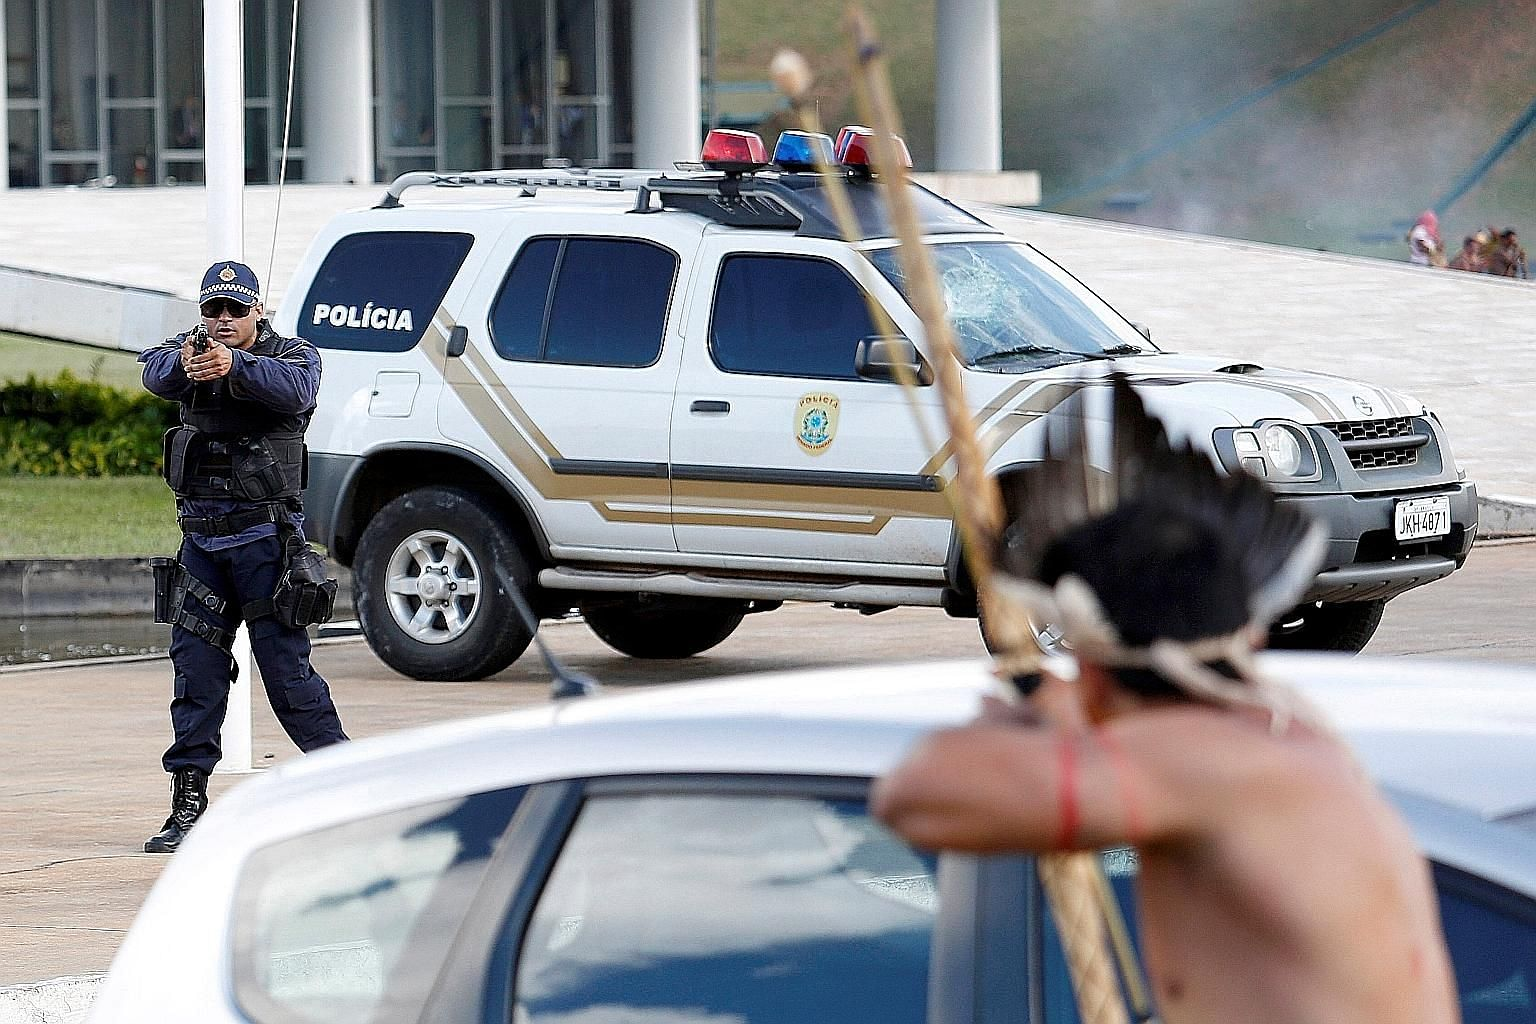 A policeman facing off against a member of an indigenous tribe in Brazil during a protest over land rights on Tuesday.